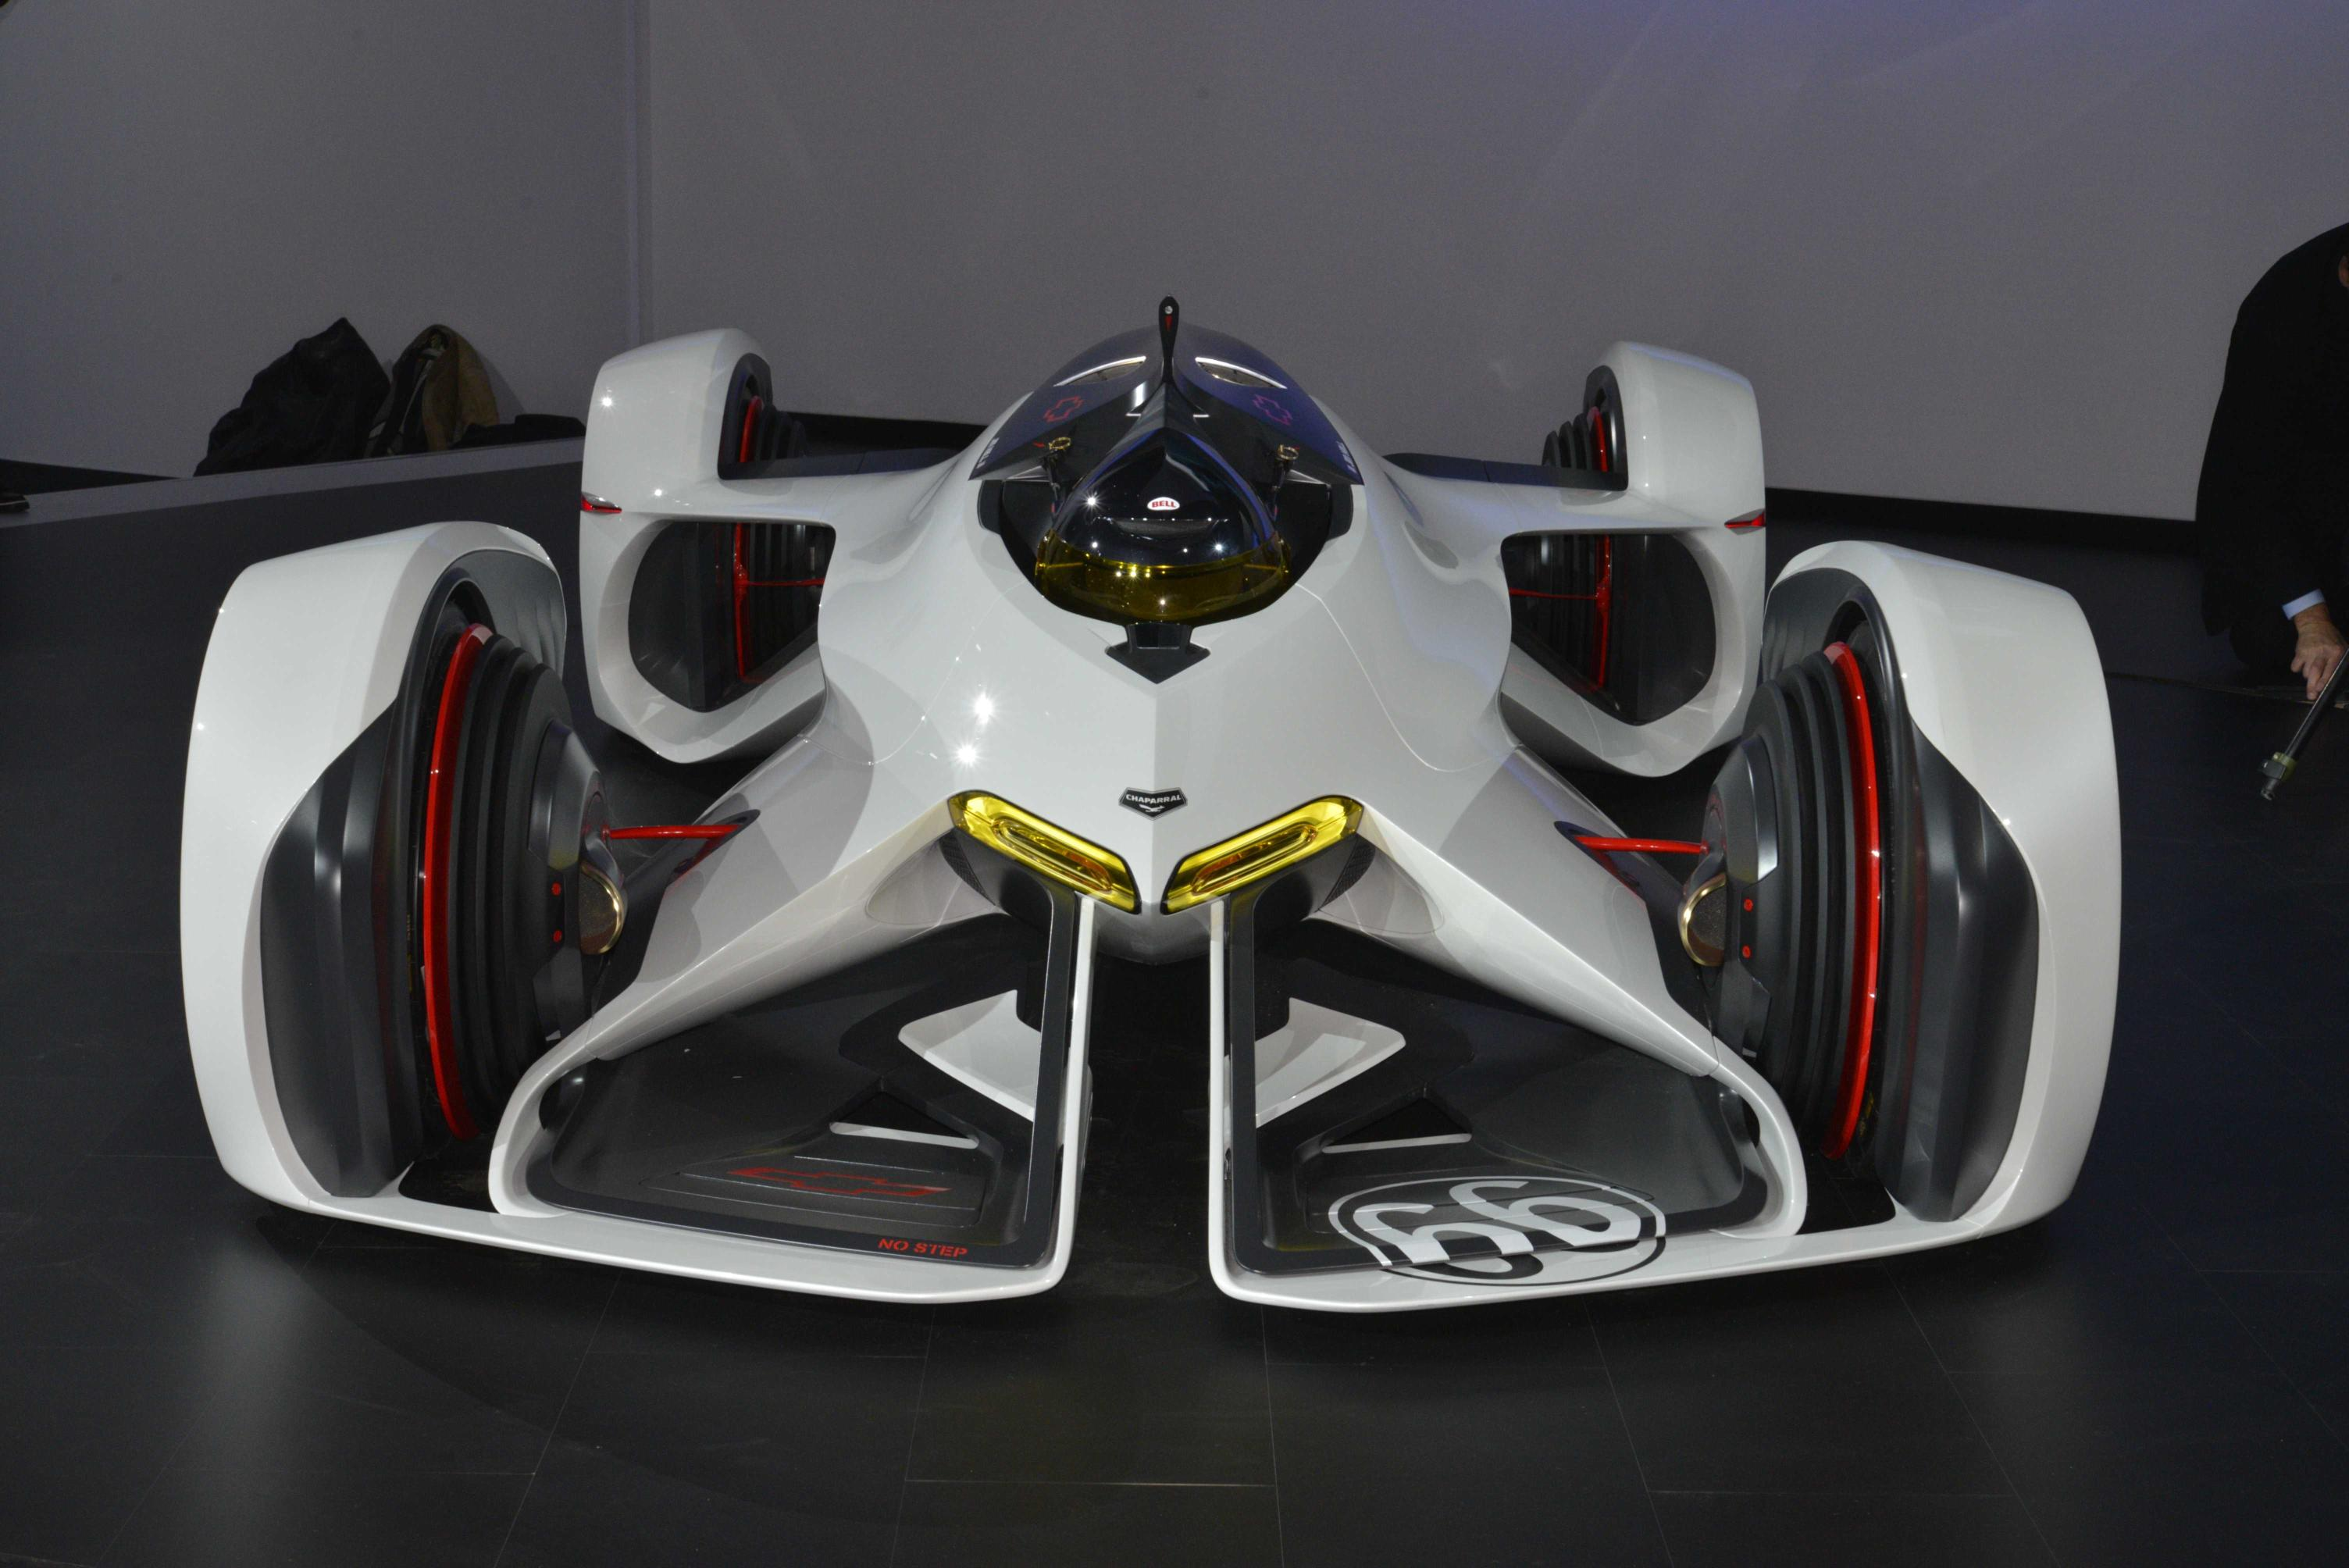 Chevrolet Chaparral Vision Gran Turismo Brings Protoss